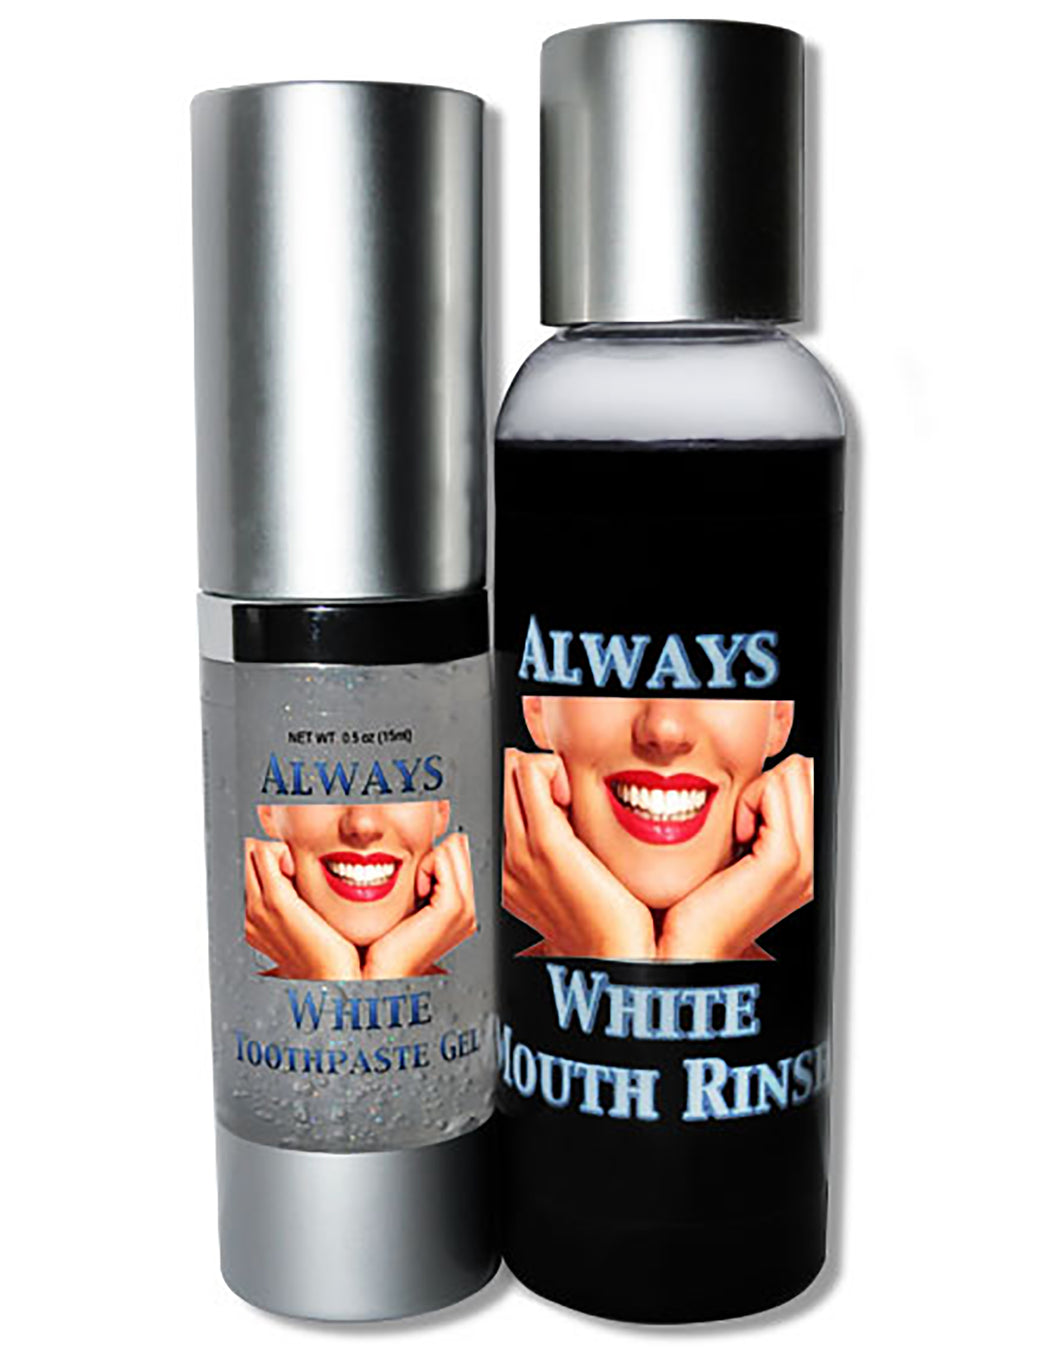 ALWAYS WHITE- Mouth Rinse & Toothpaste Gel - Isopropyl-Alcohol.Com